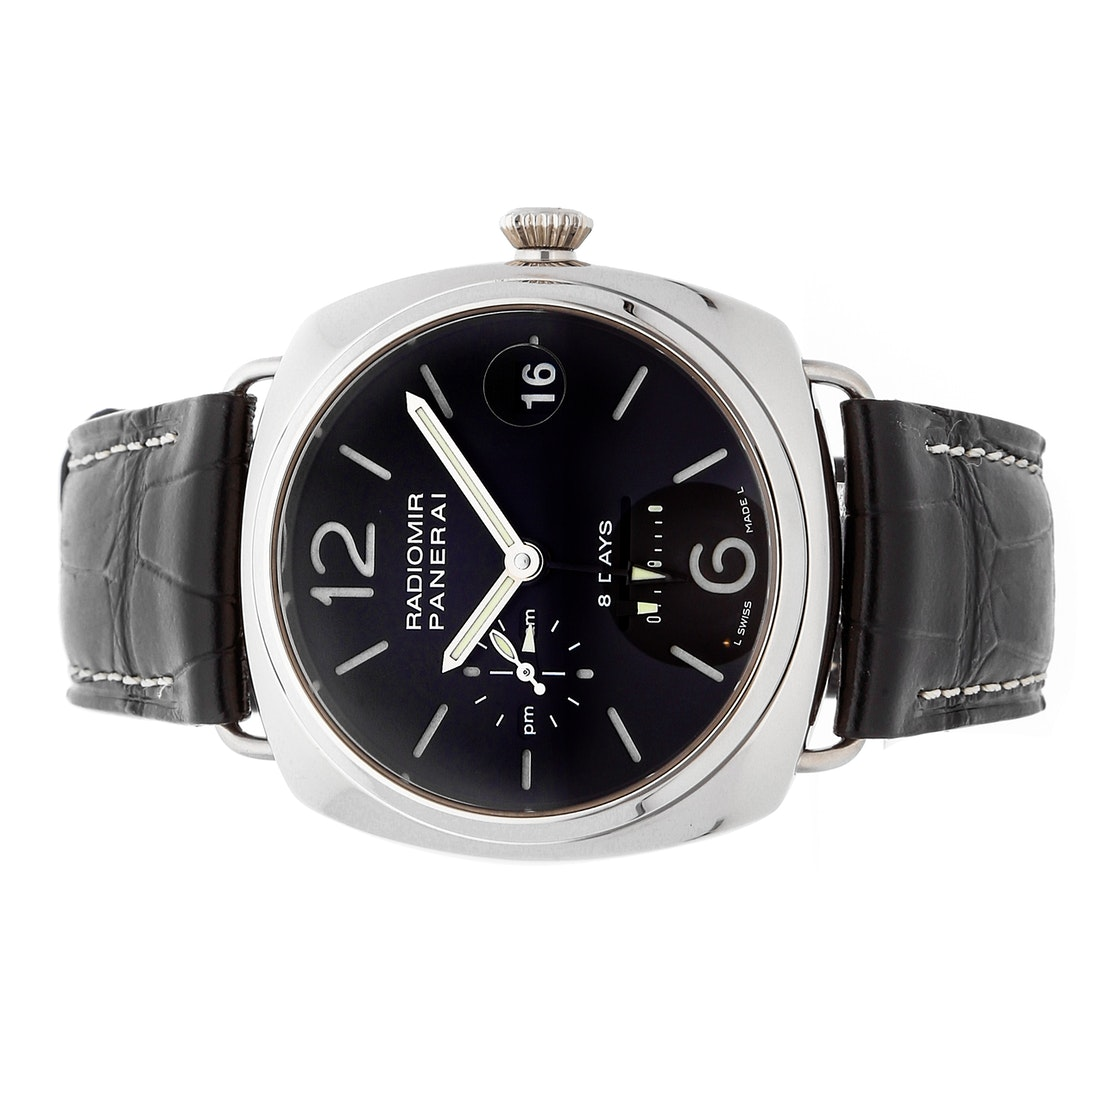 Panerai Radiomir GMT 8-Day Limited Edition PAM 200